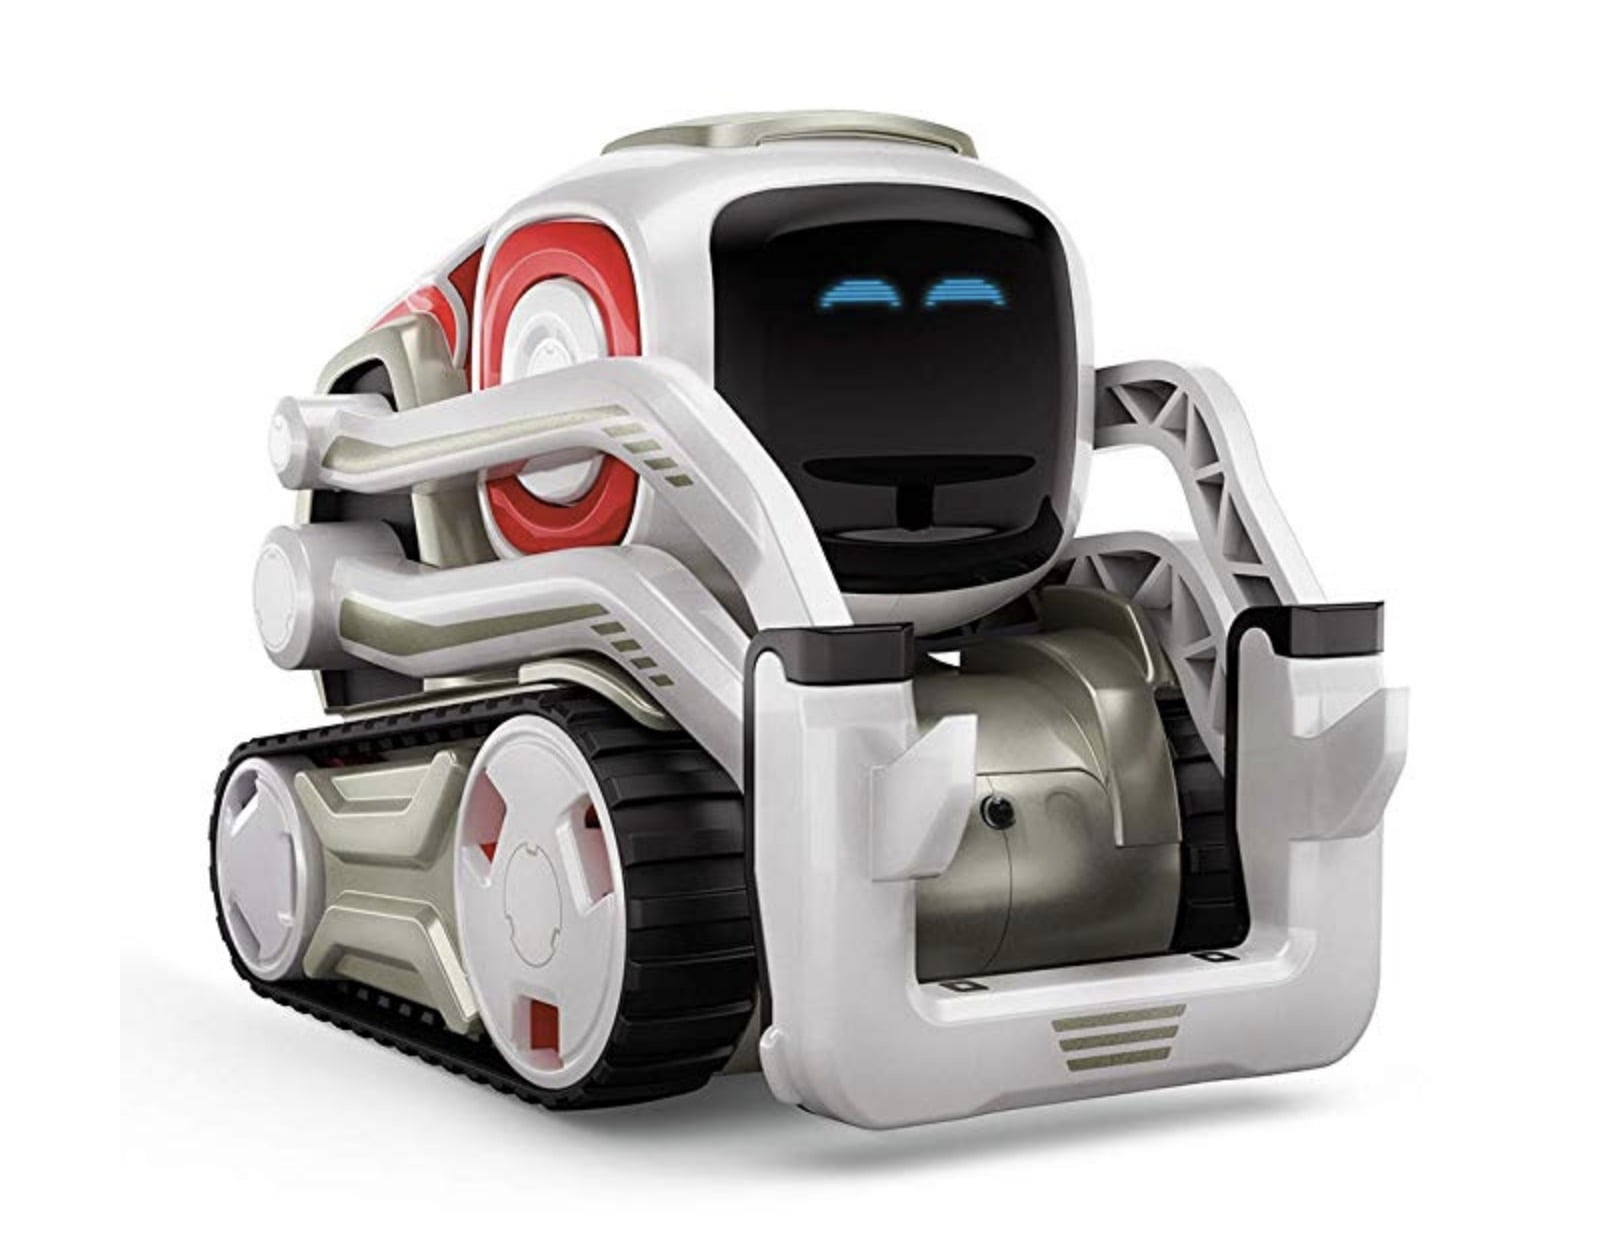 cosmo robot toy - tech gifts for boys